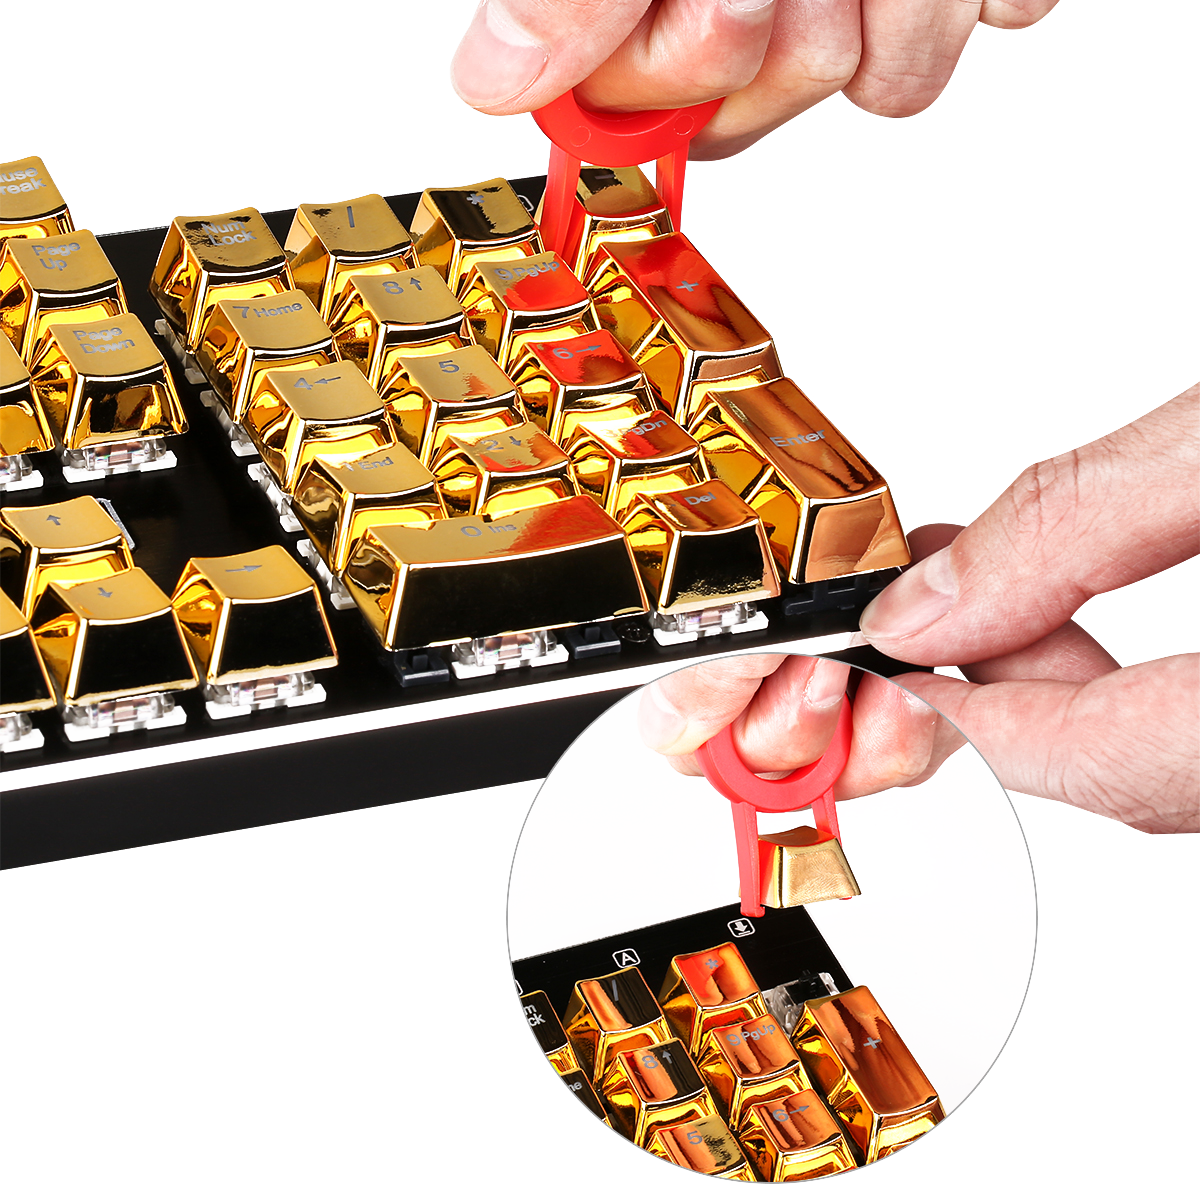 Redragon A101G 104 ABS Double Shot Injection Backlit Metallic Electroplated Gold Color Keycaps